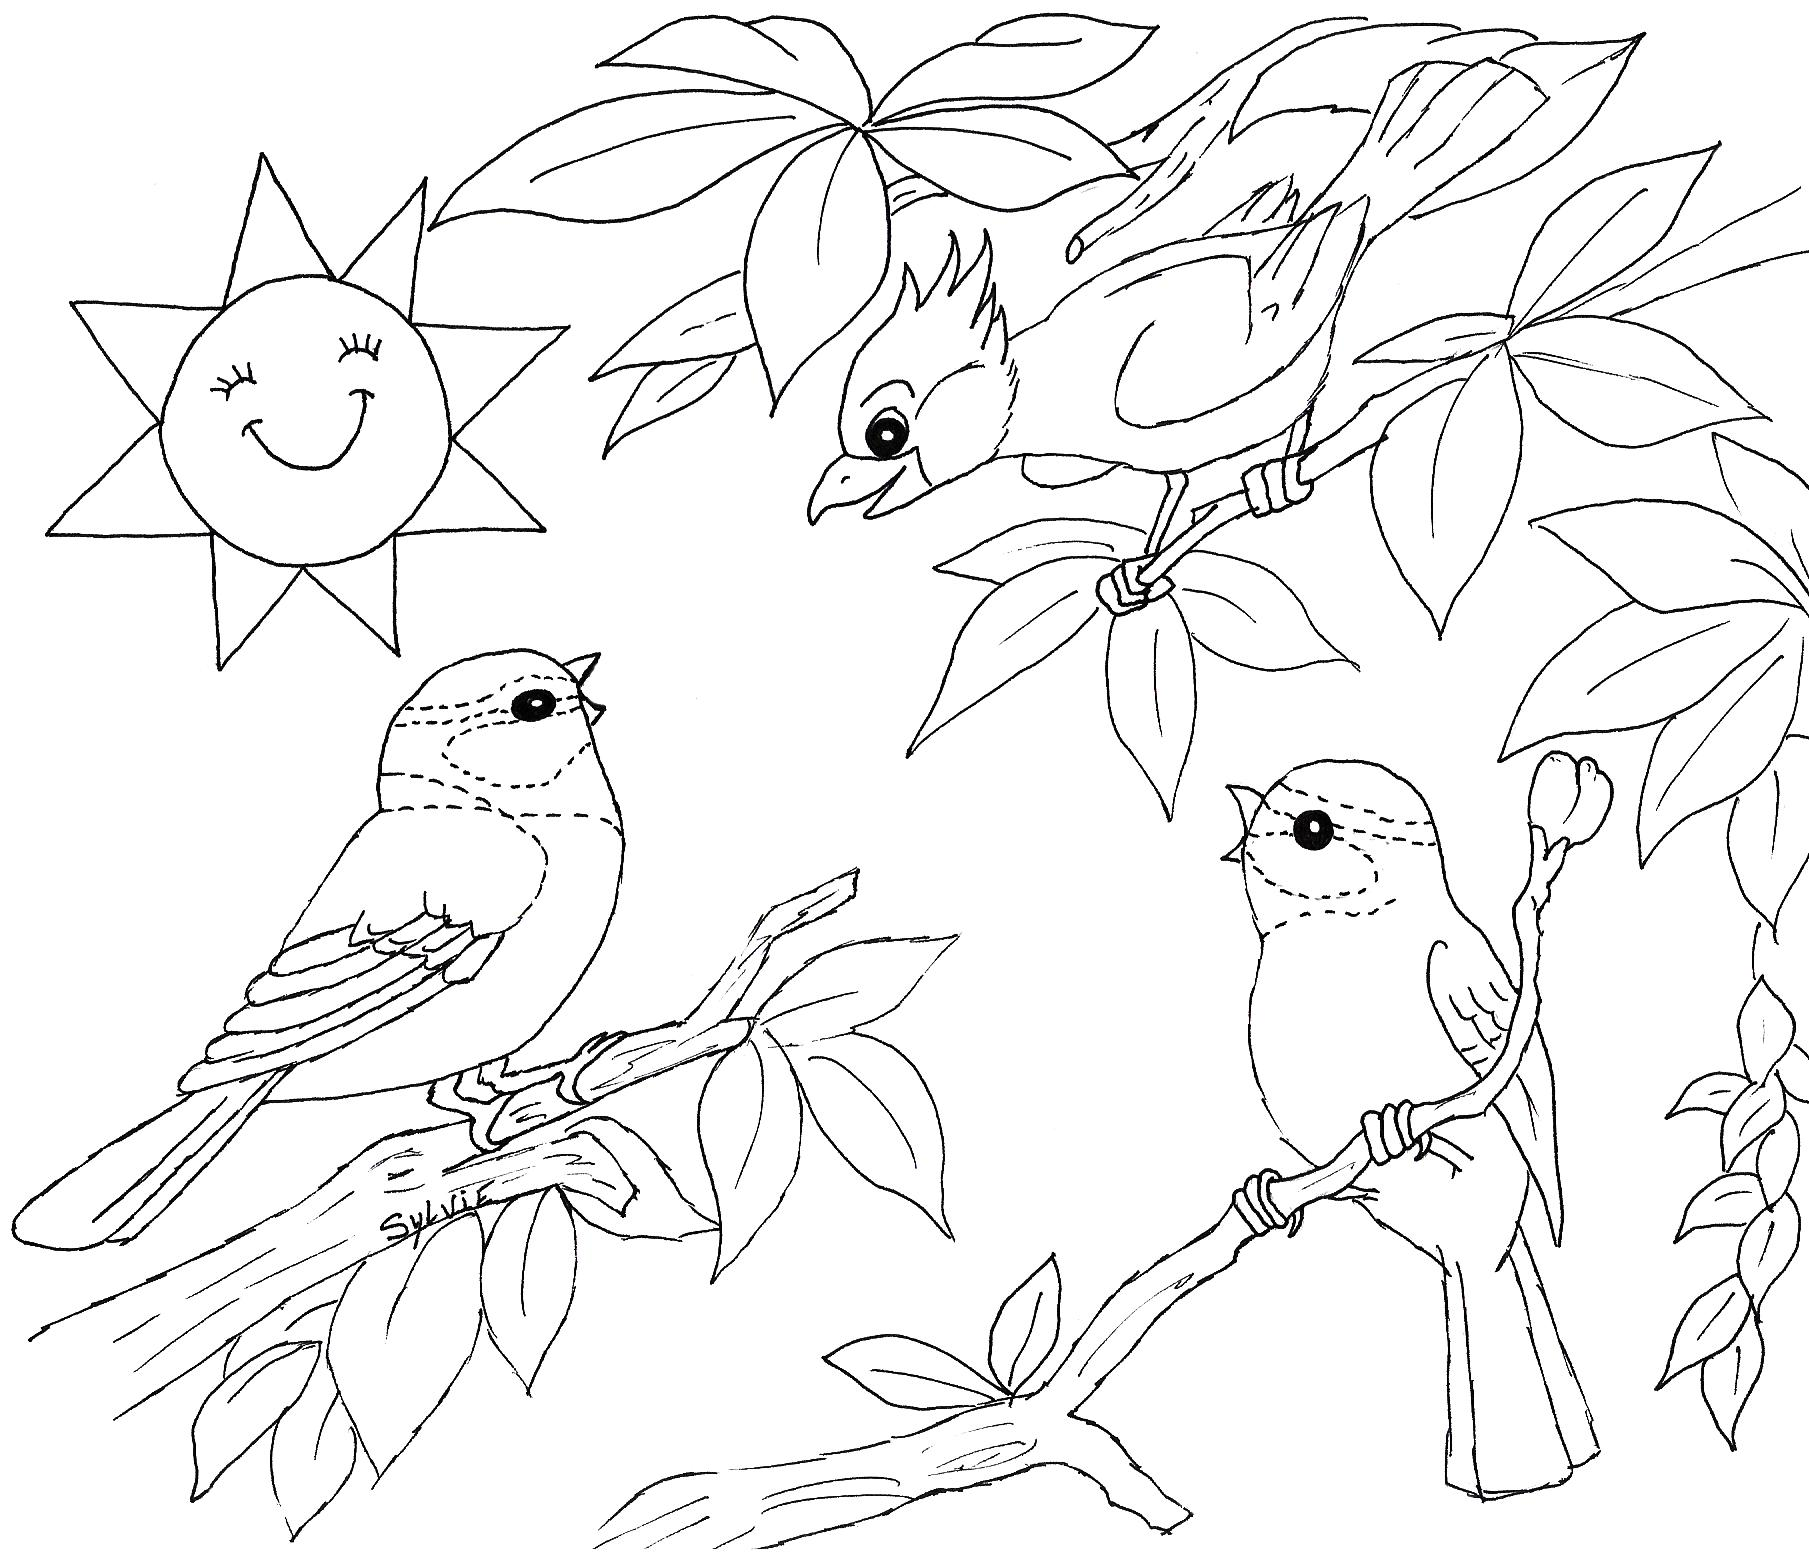 bird colouring pages for kids tweety bird coloring pages kidsuki for pages bird kids colouring